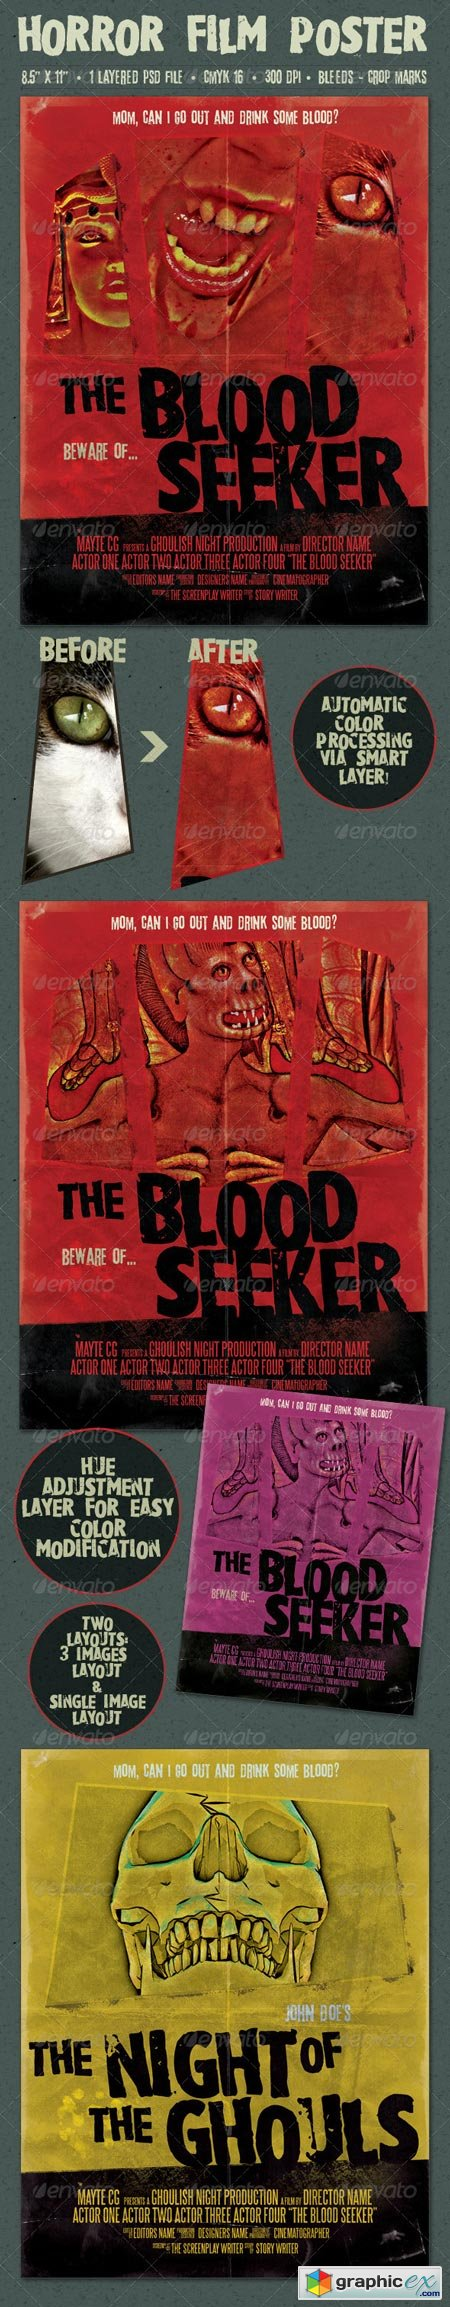 The Blood Seeker Vintage Style Horror Film Poster 6927269